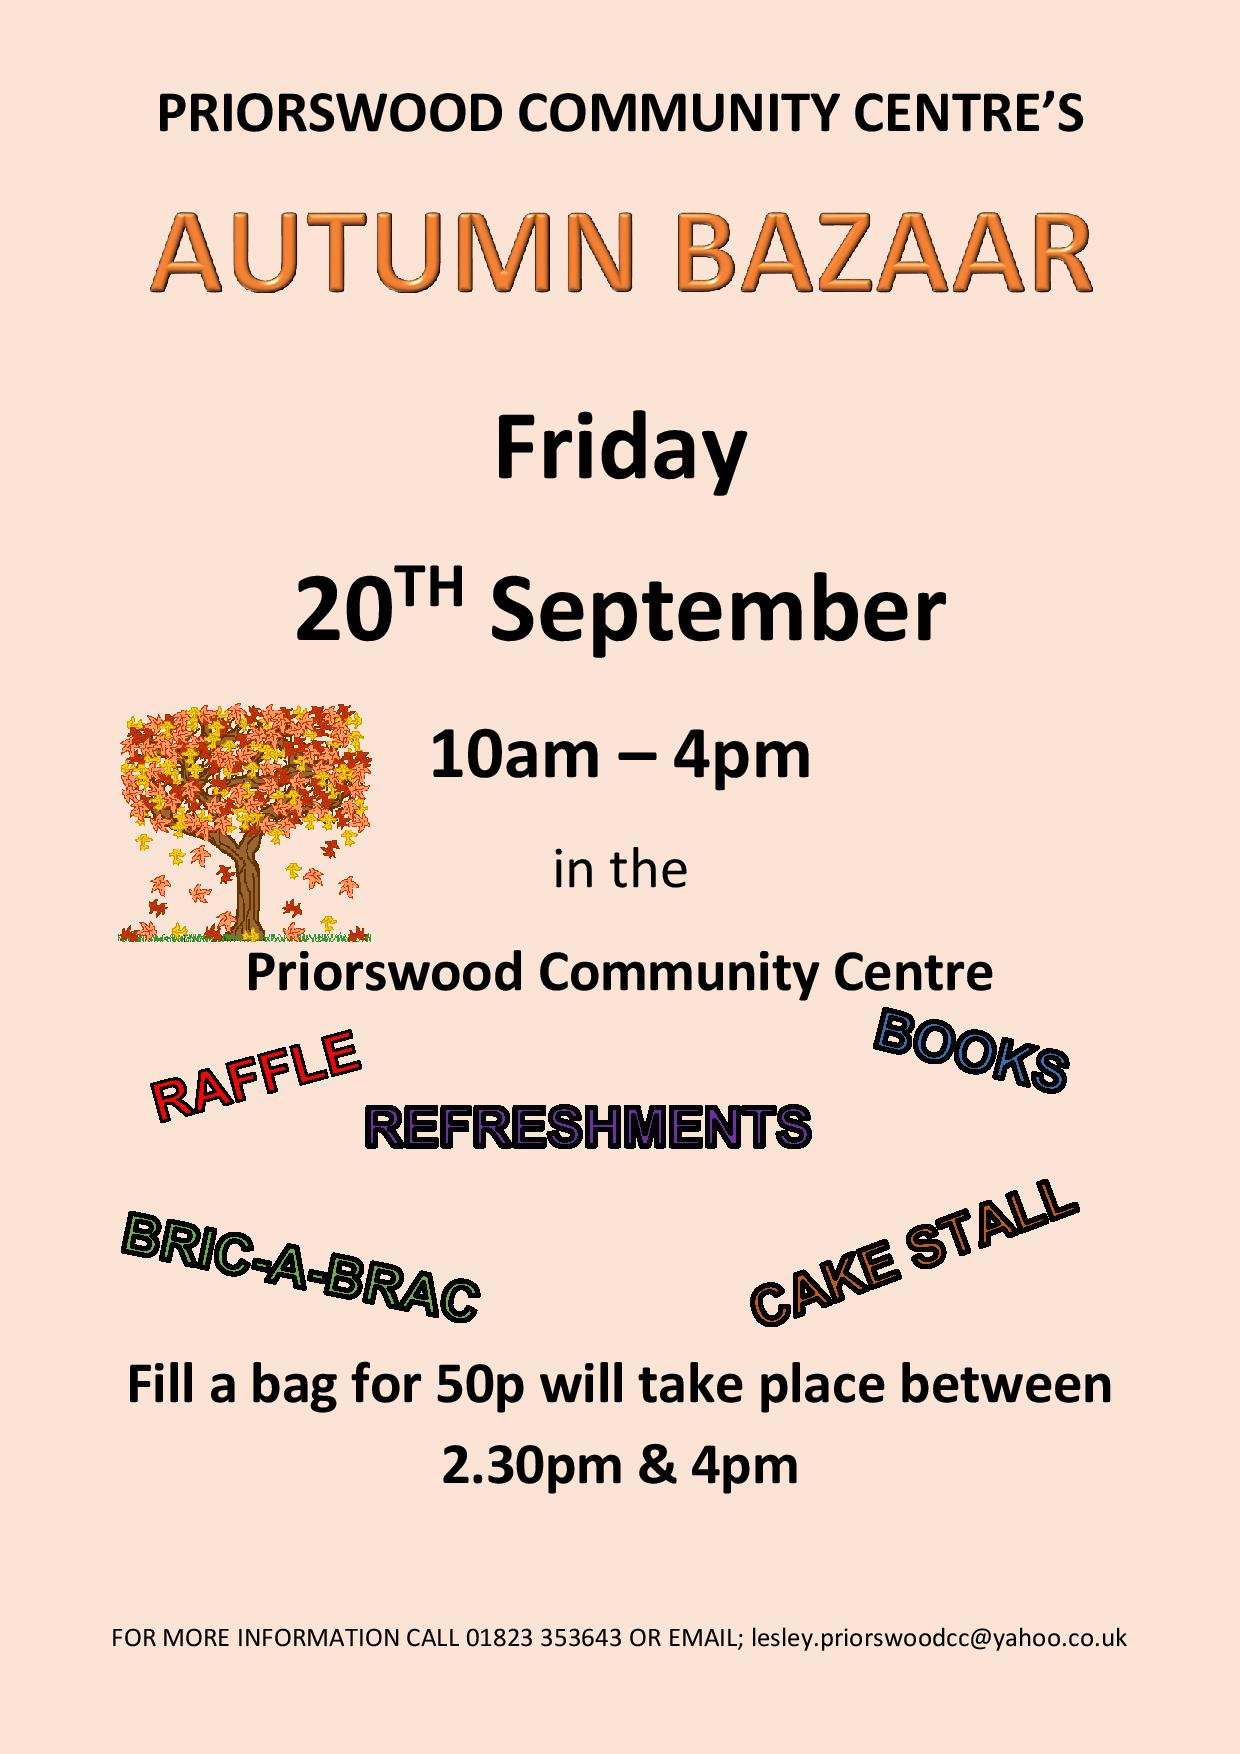 Priorswood Community Centre Autumn Bazaar